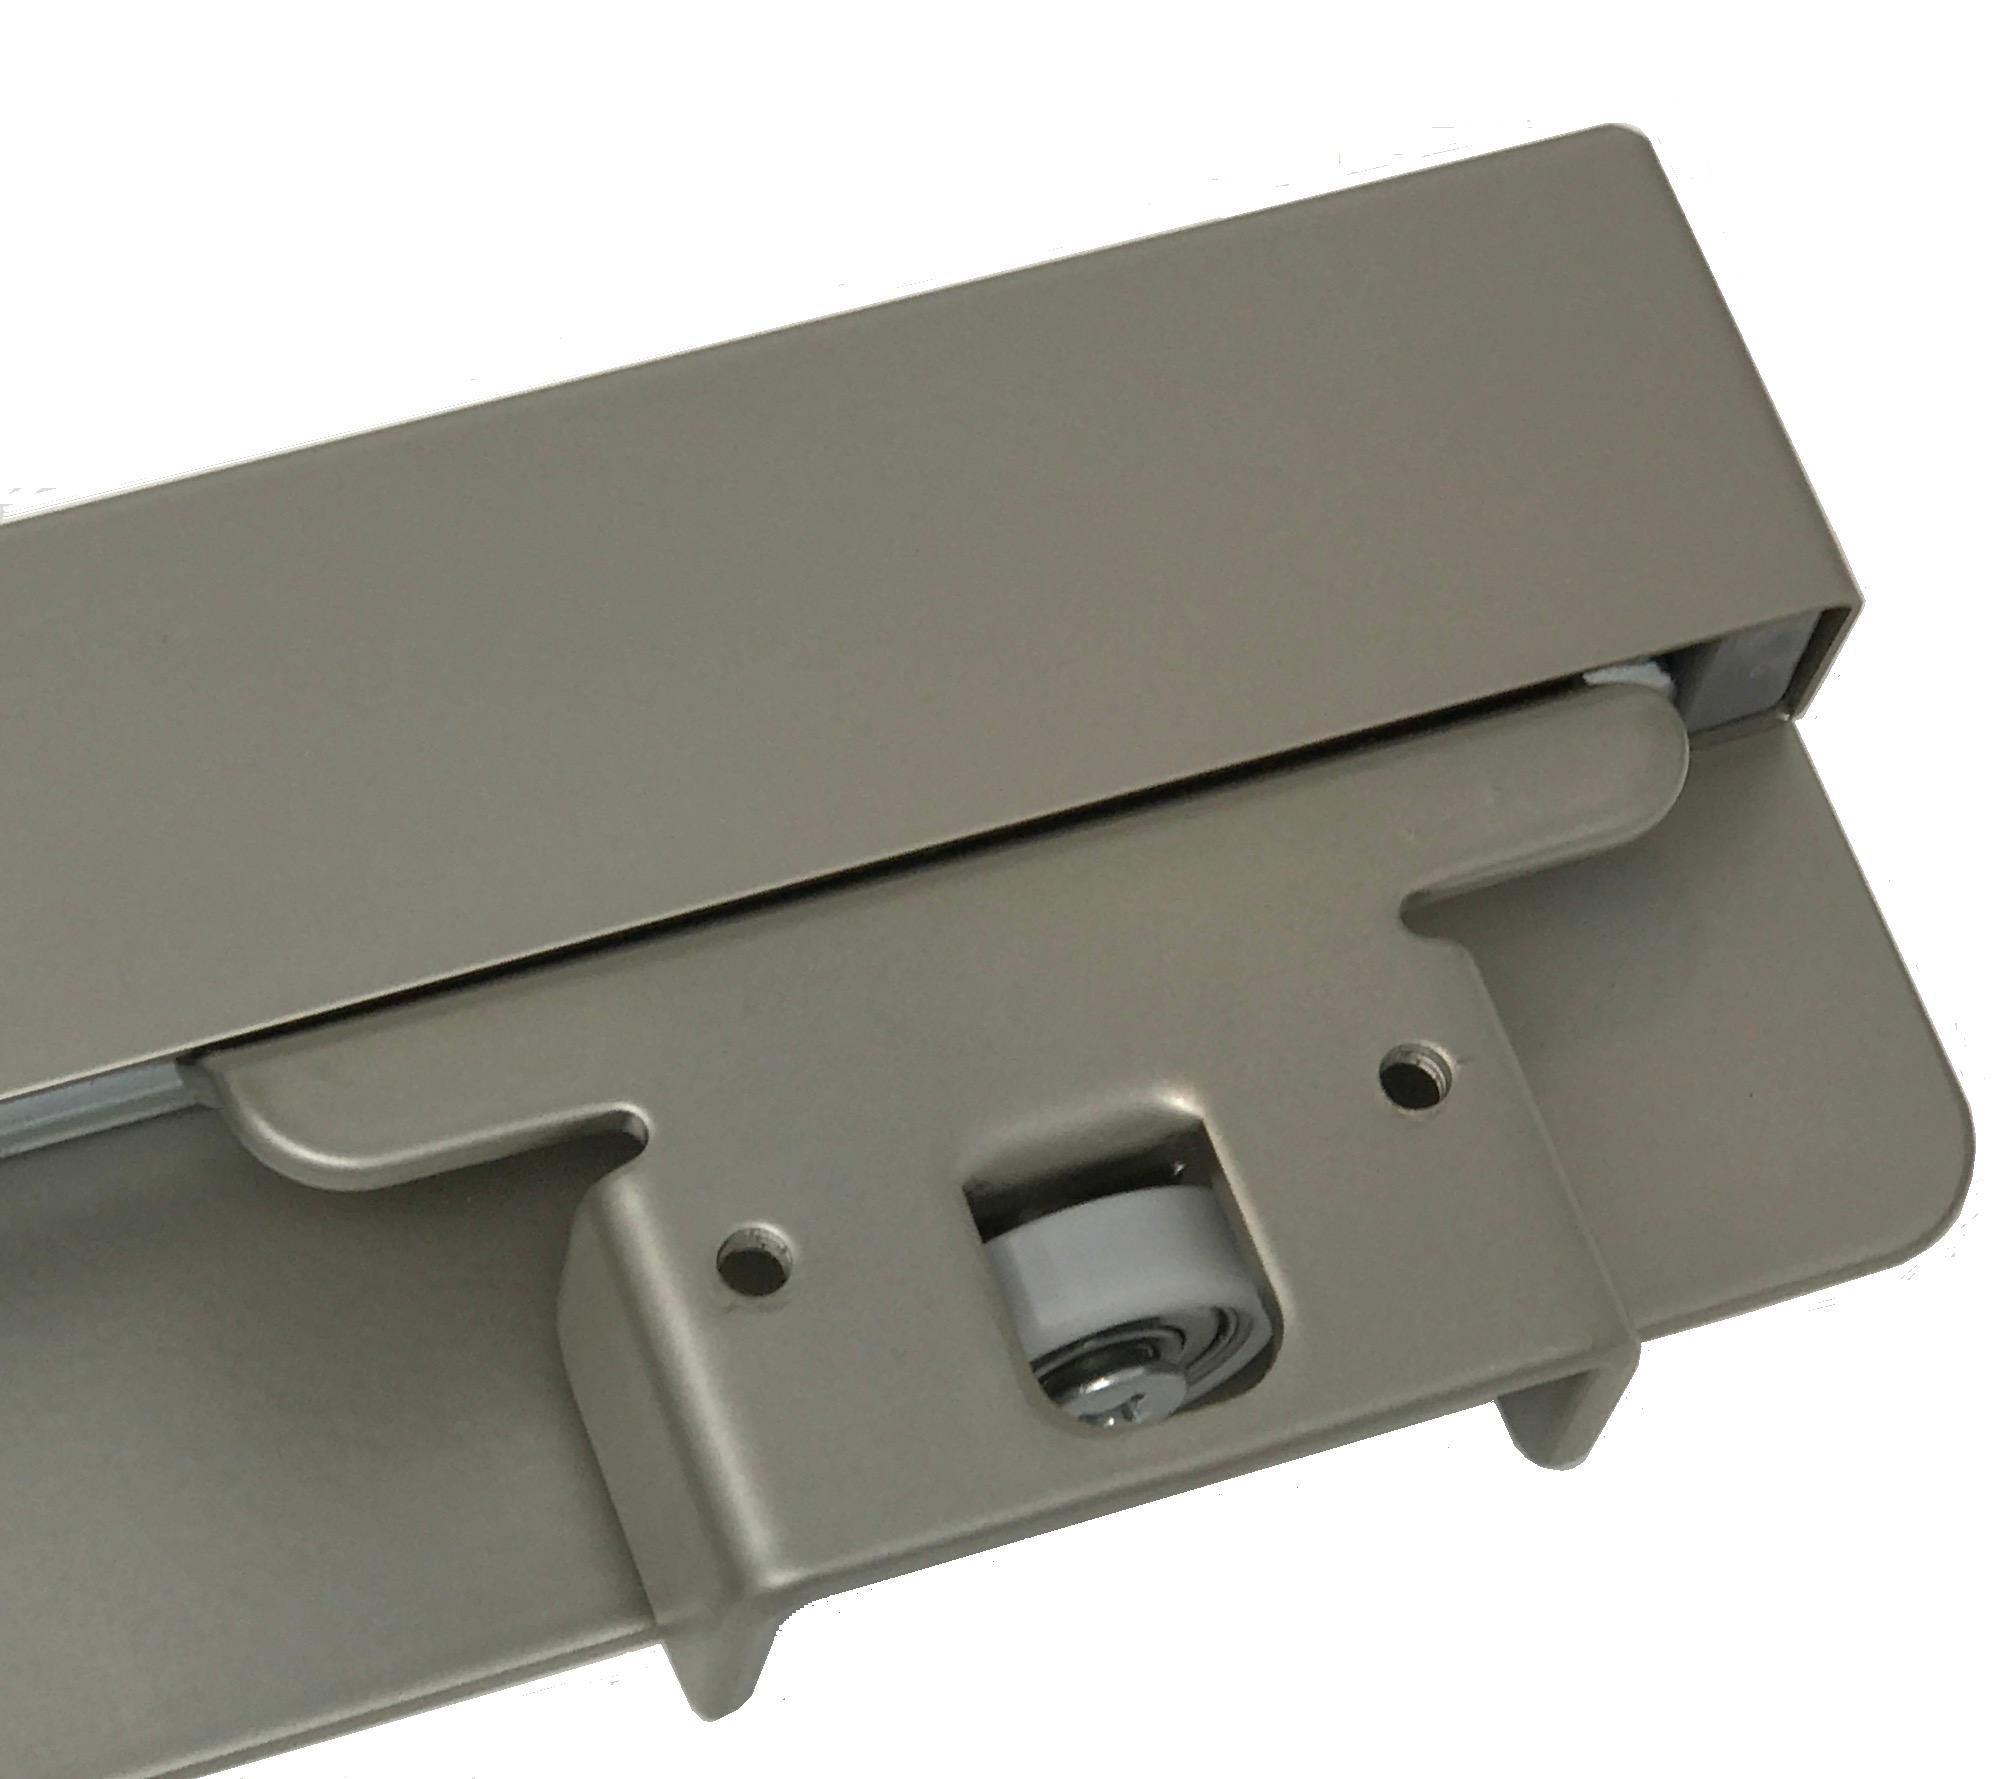 Pants Rack Pant Hanger, Slide Out Side Mount Satin Nickel, For 15'' or wider spaces, Heavy Duty by Cabinet Organizers